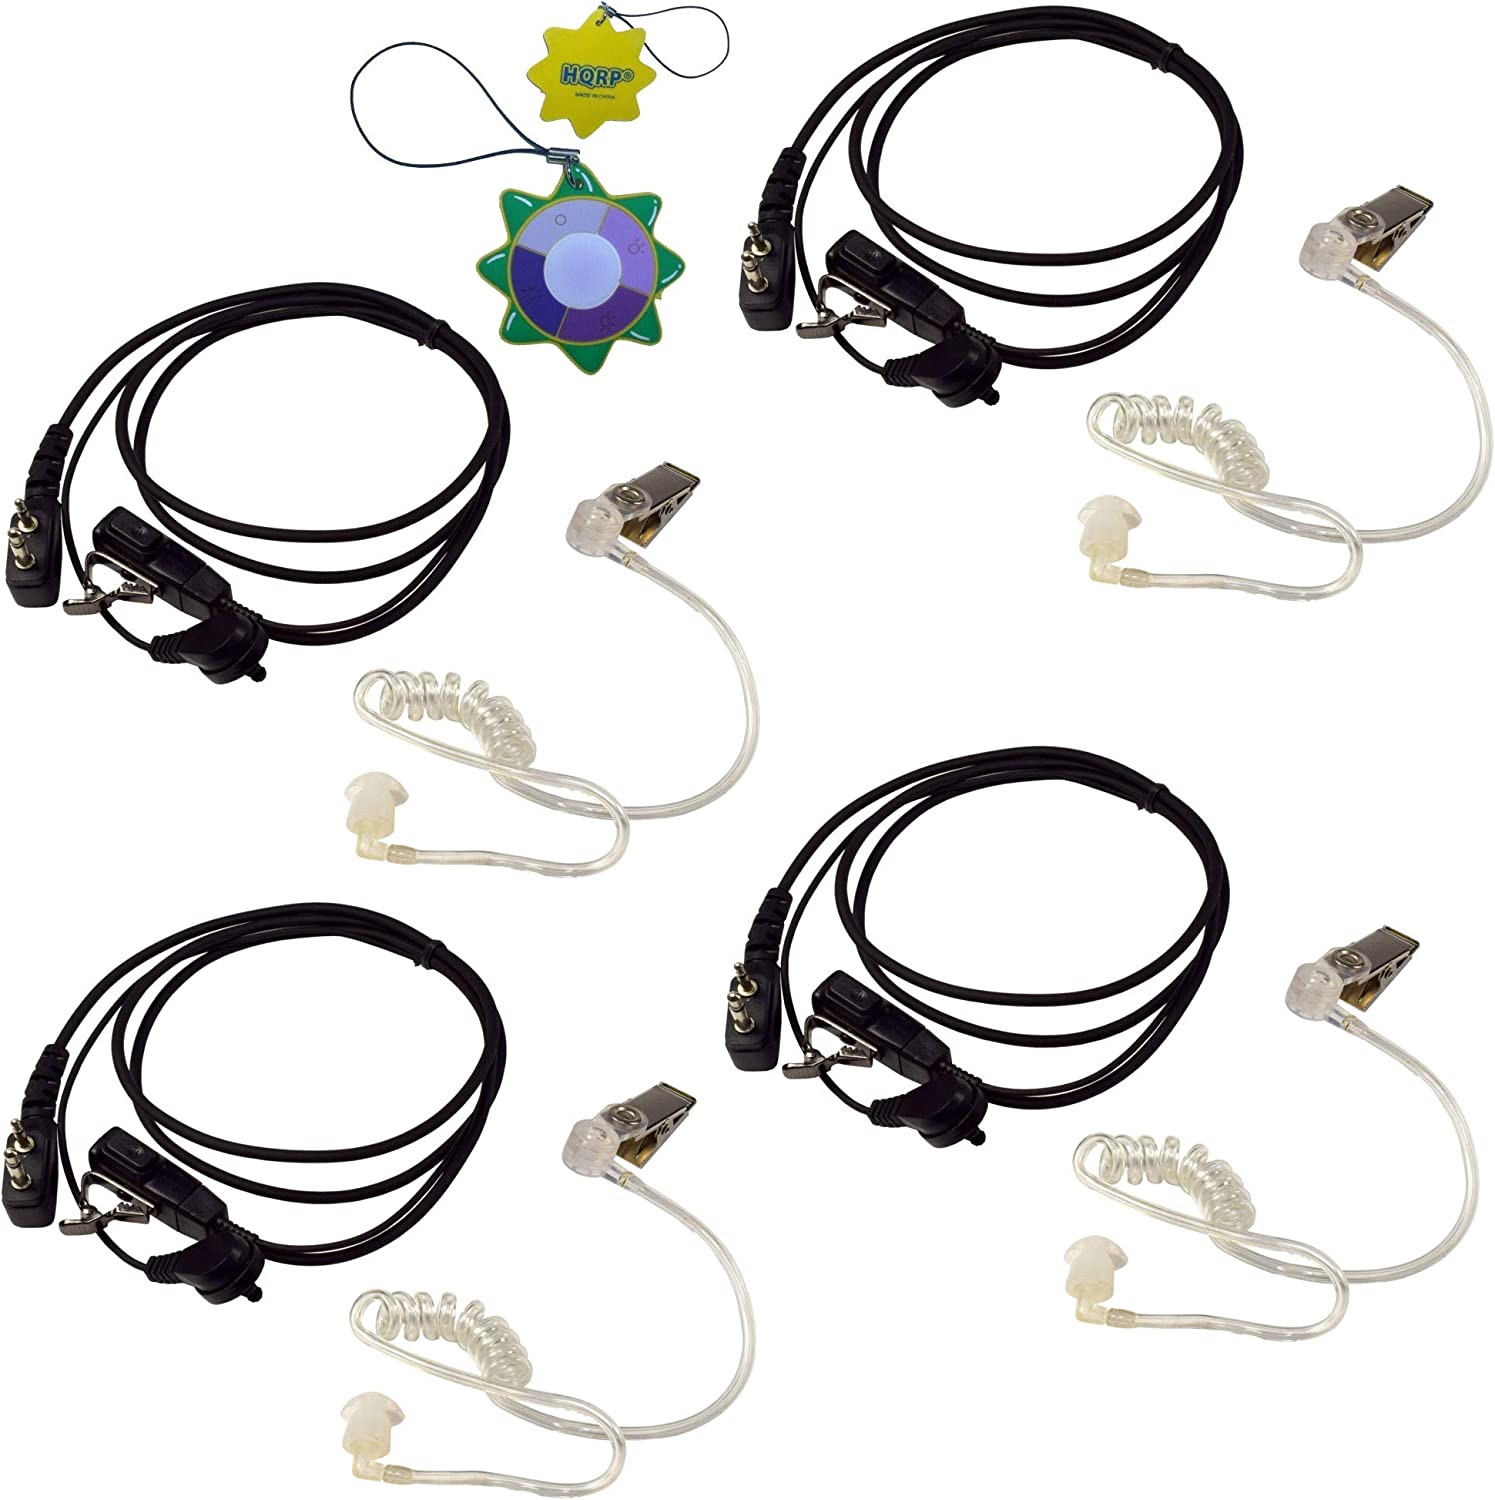 4X HQRP 2 Pin Acoustic Tube Headsets お歳暮 Mic wit Compatible Earpiece SEAL限定商品